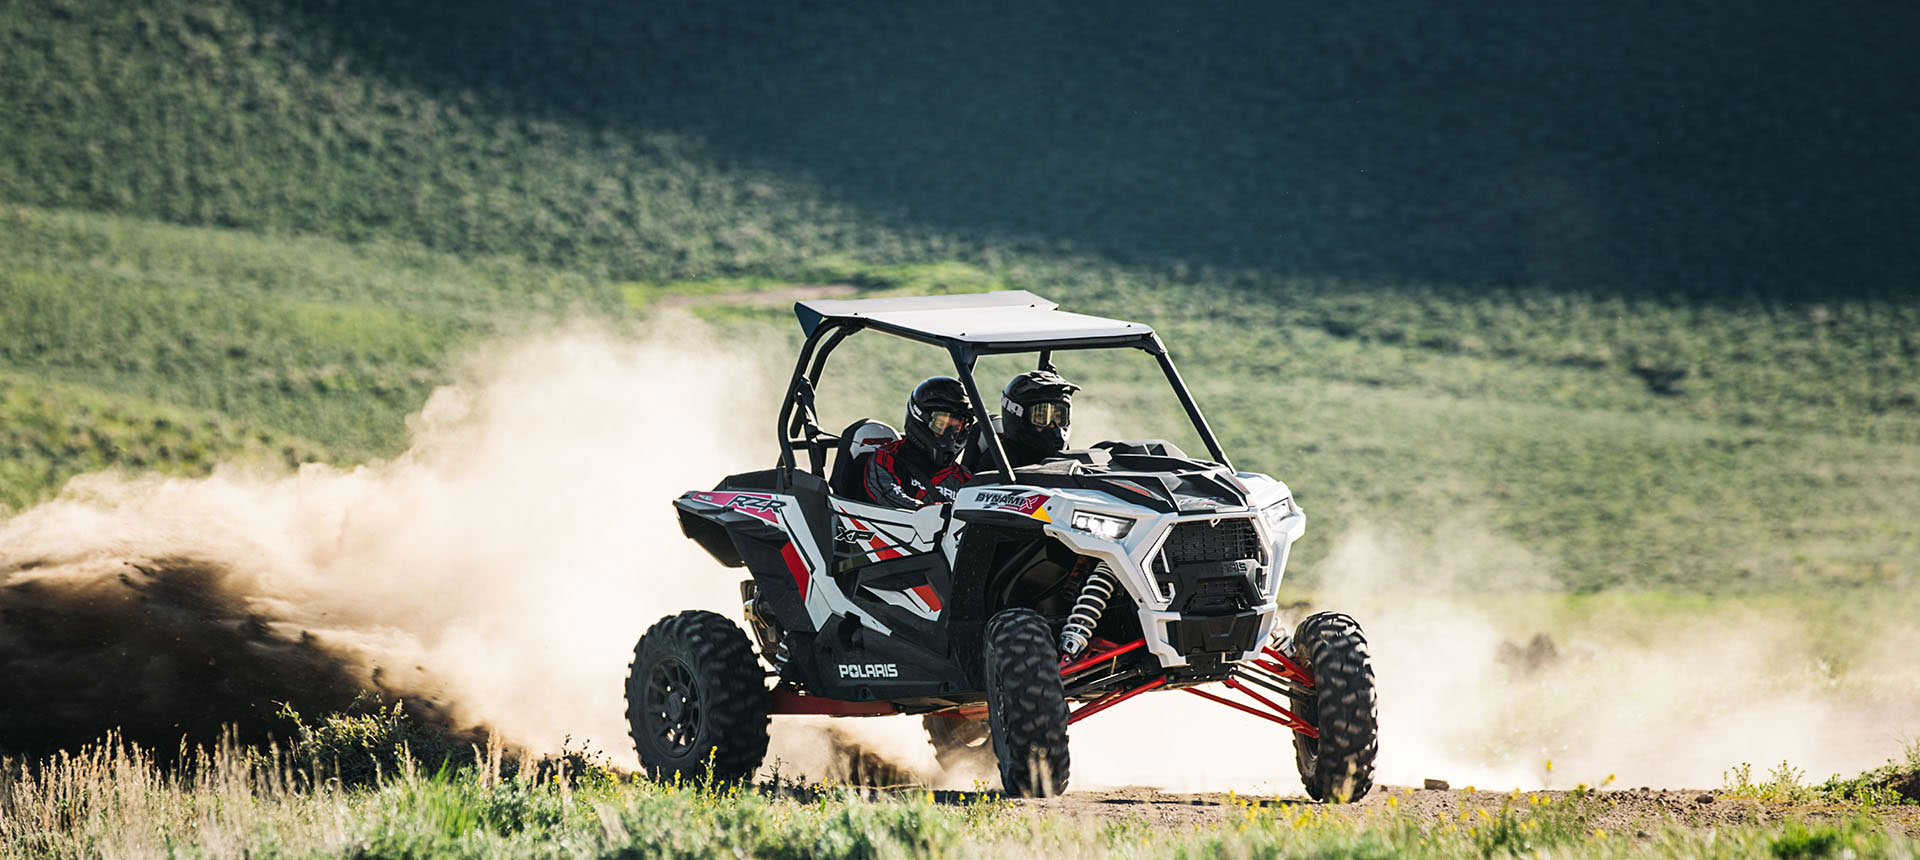 2019 Polaris RZR XP 1000 in Santa Maria, California - Photo 3